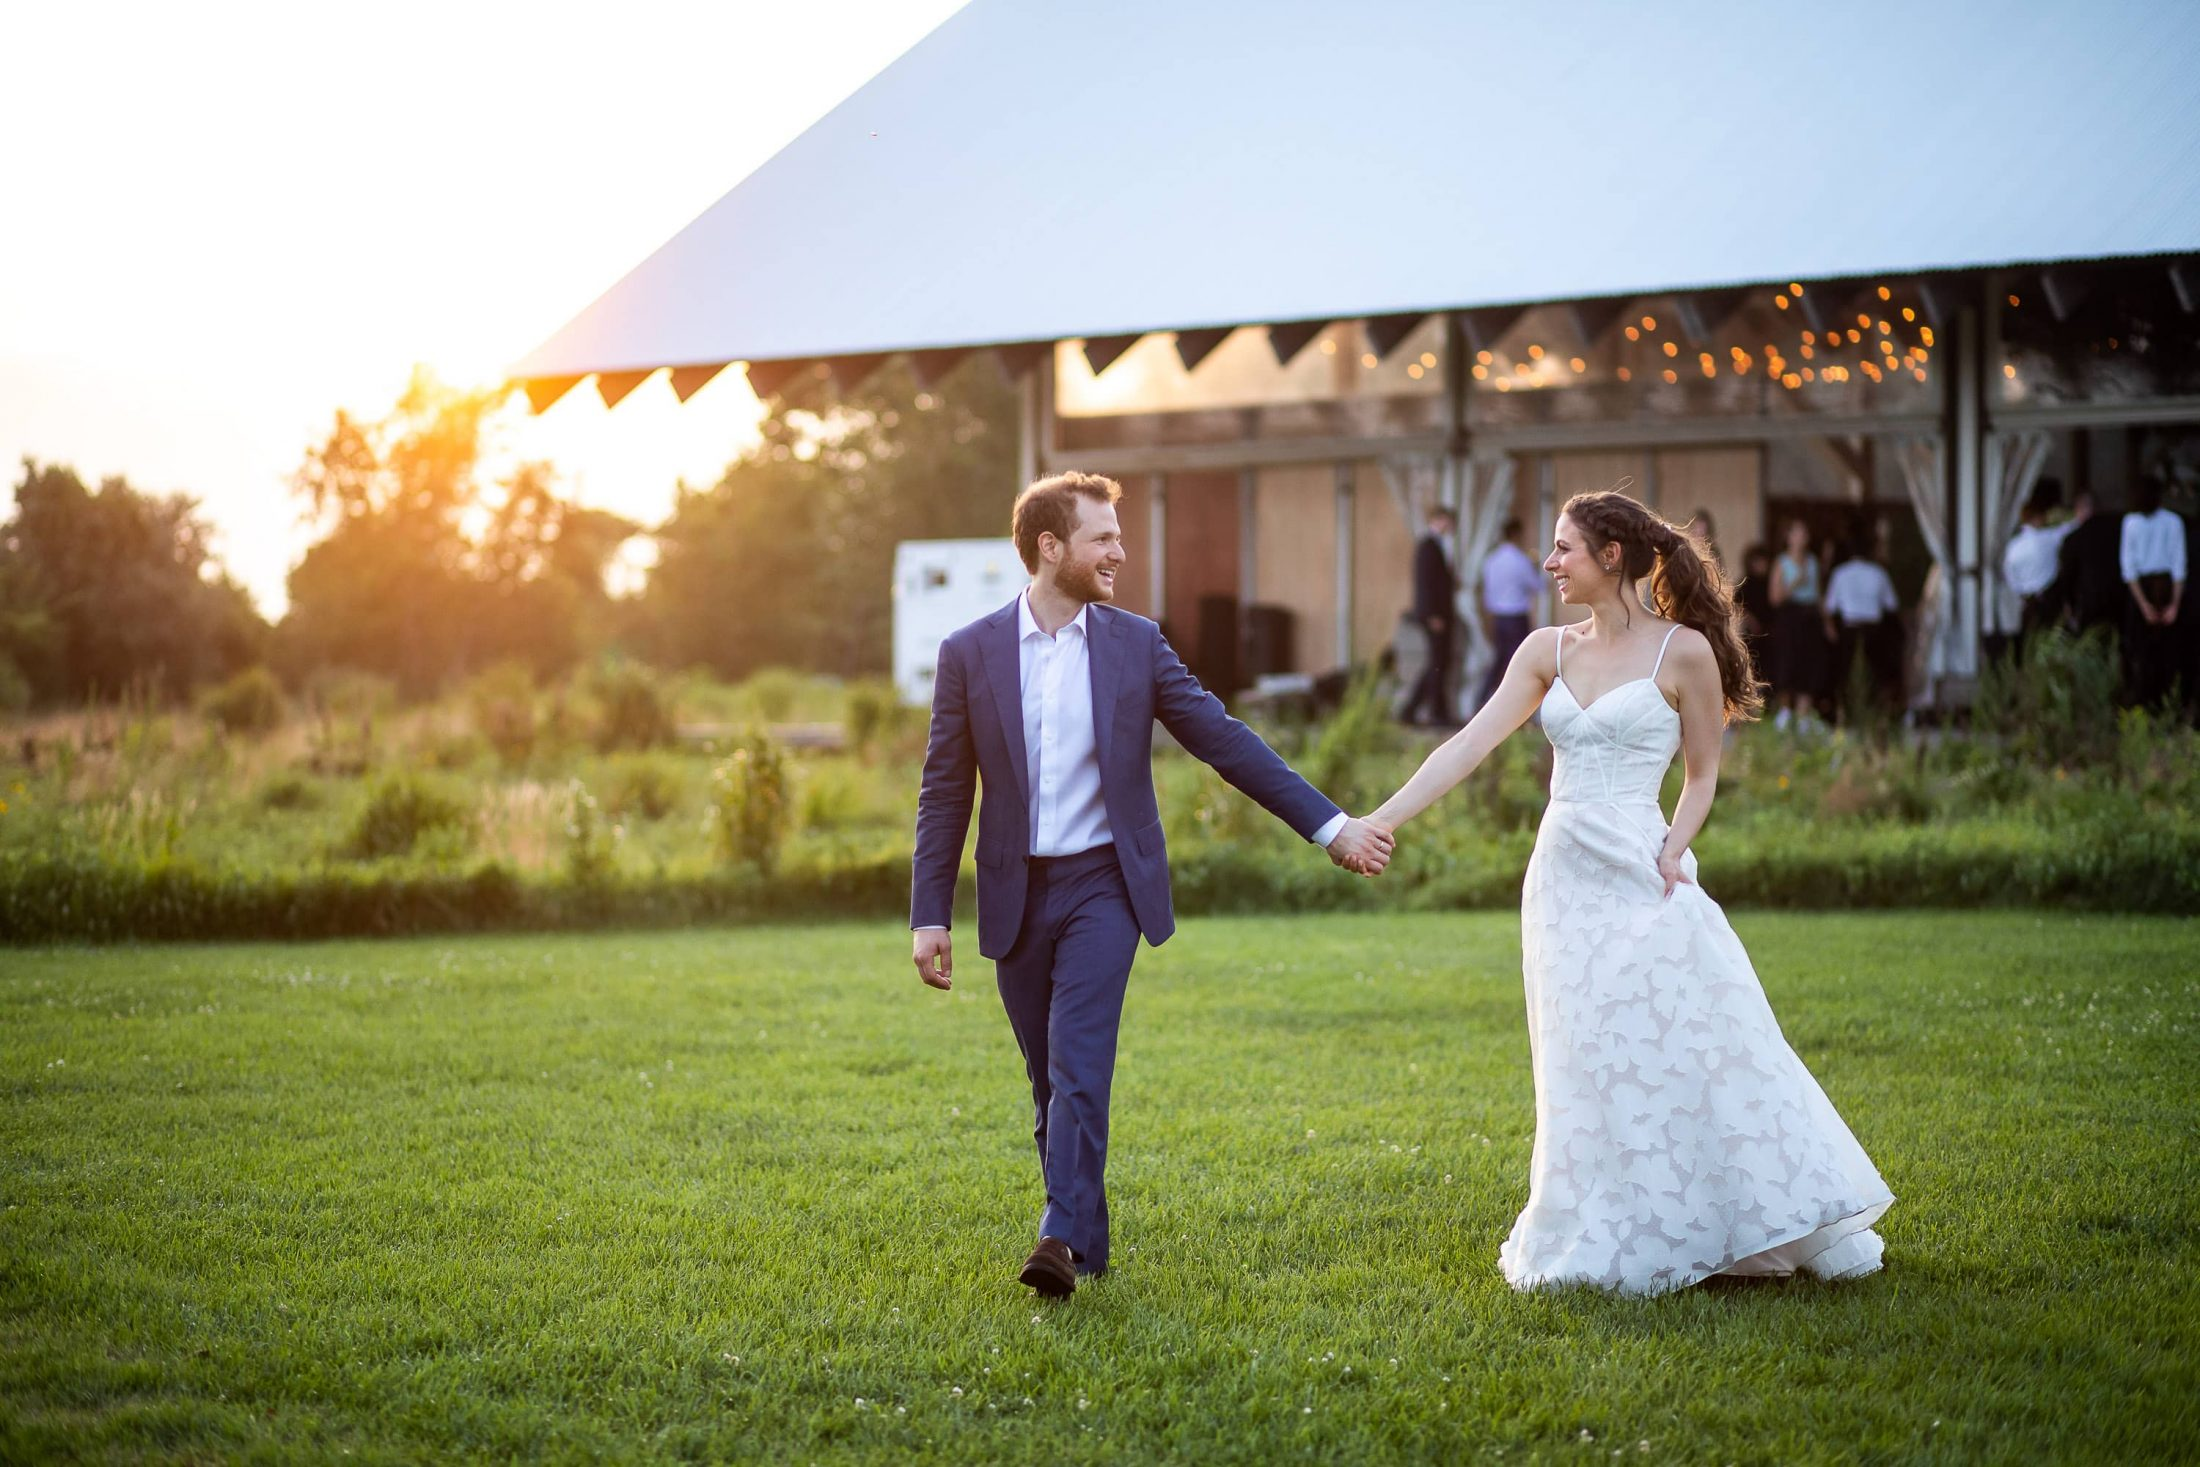 Bride and groom at reception at this Hamptons wedding weekend held at The Parrish Museum | Photo by Roey Yohai Studio